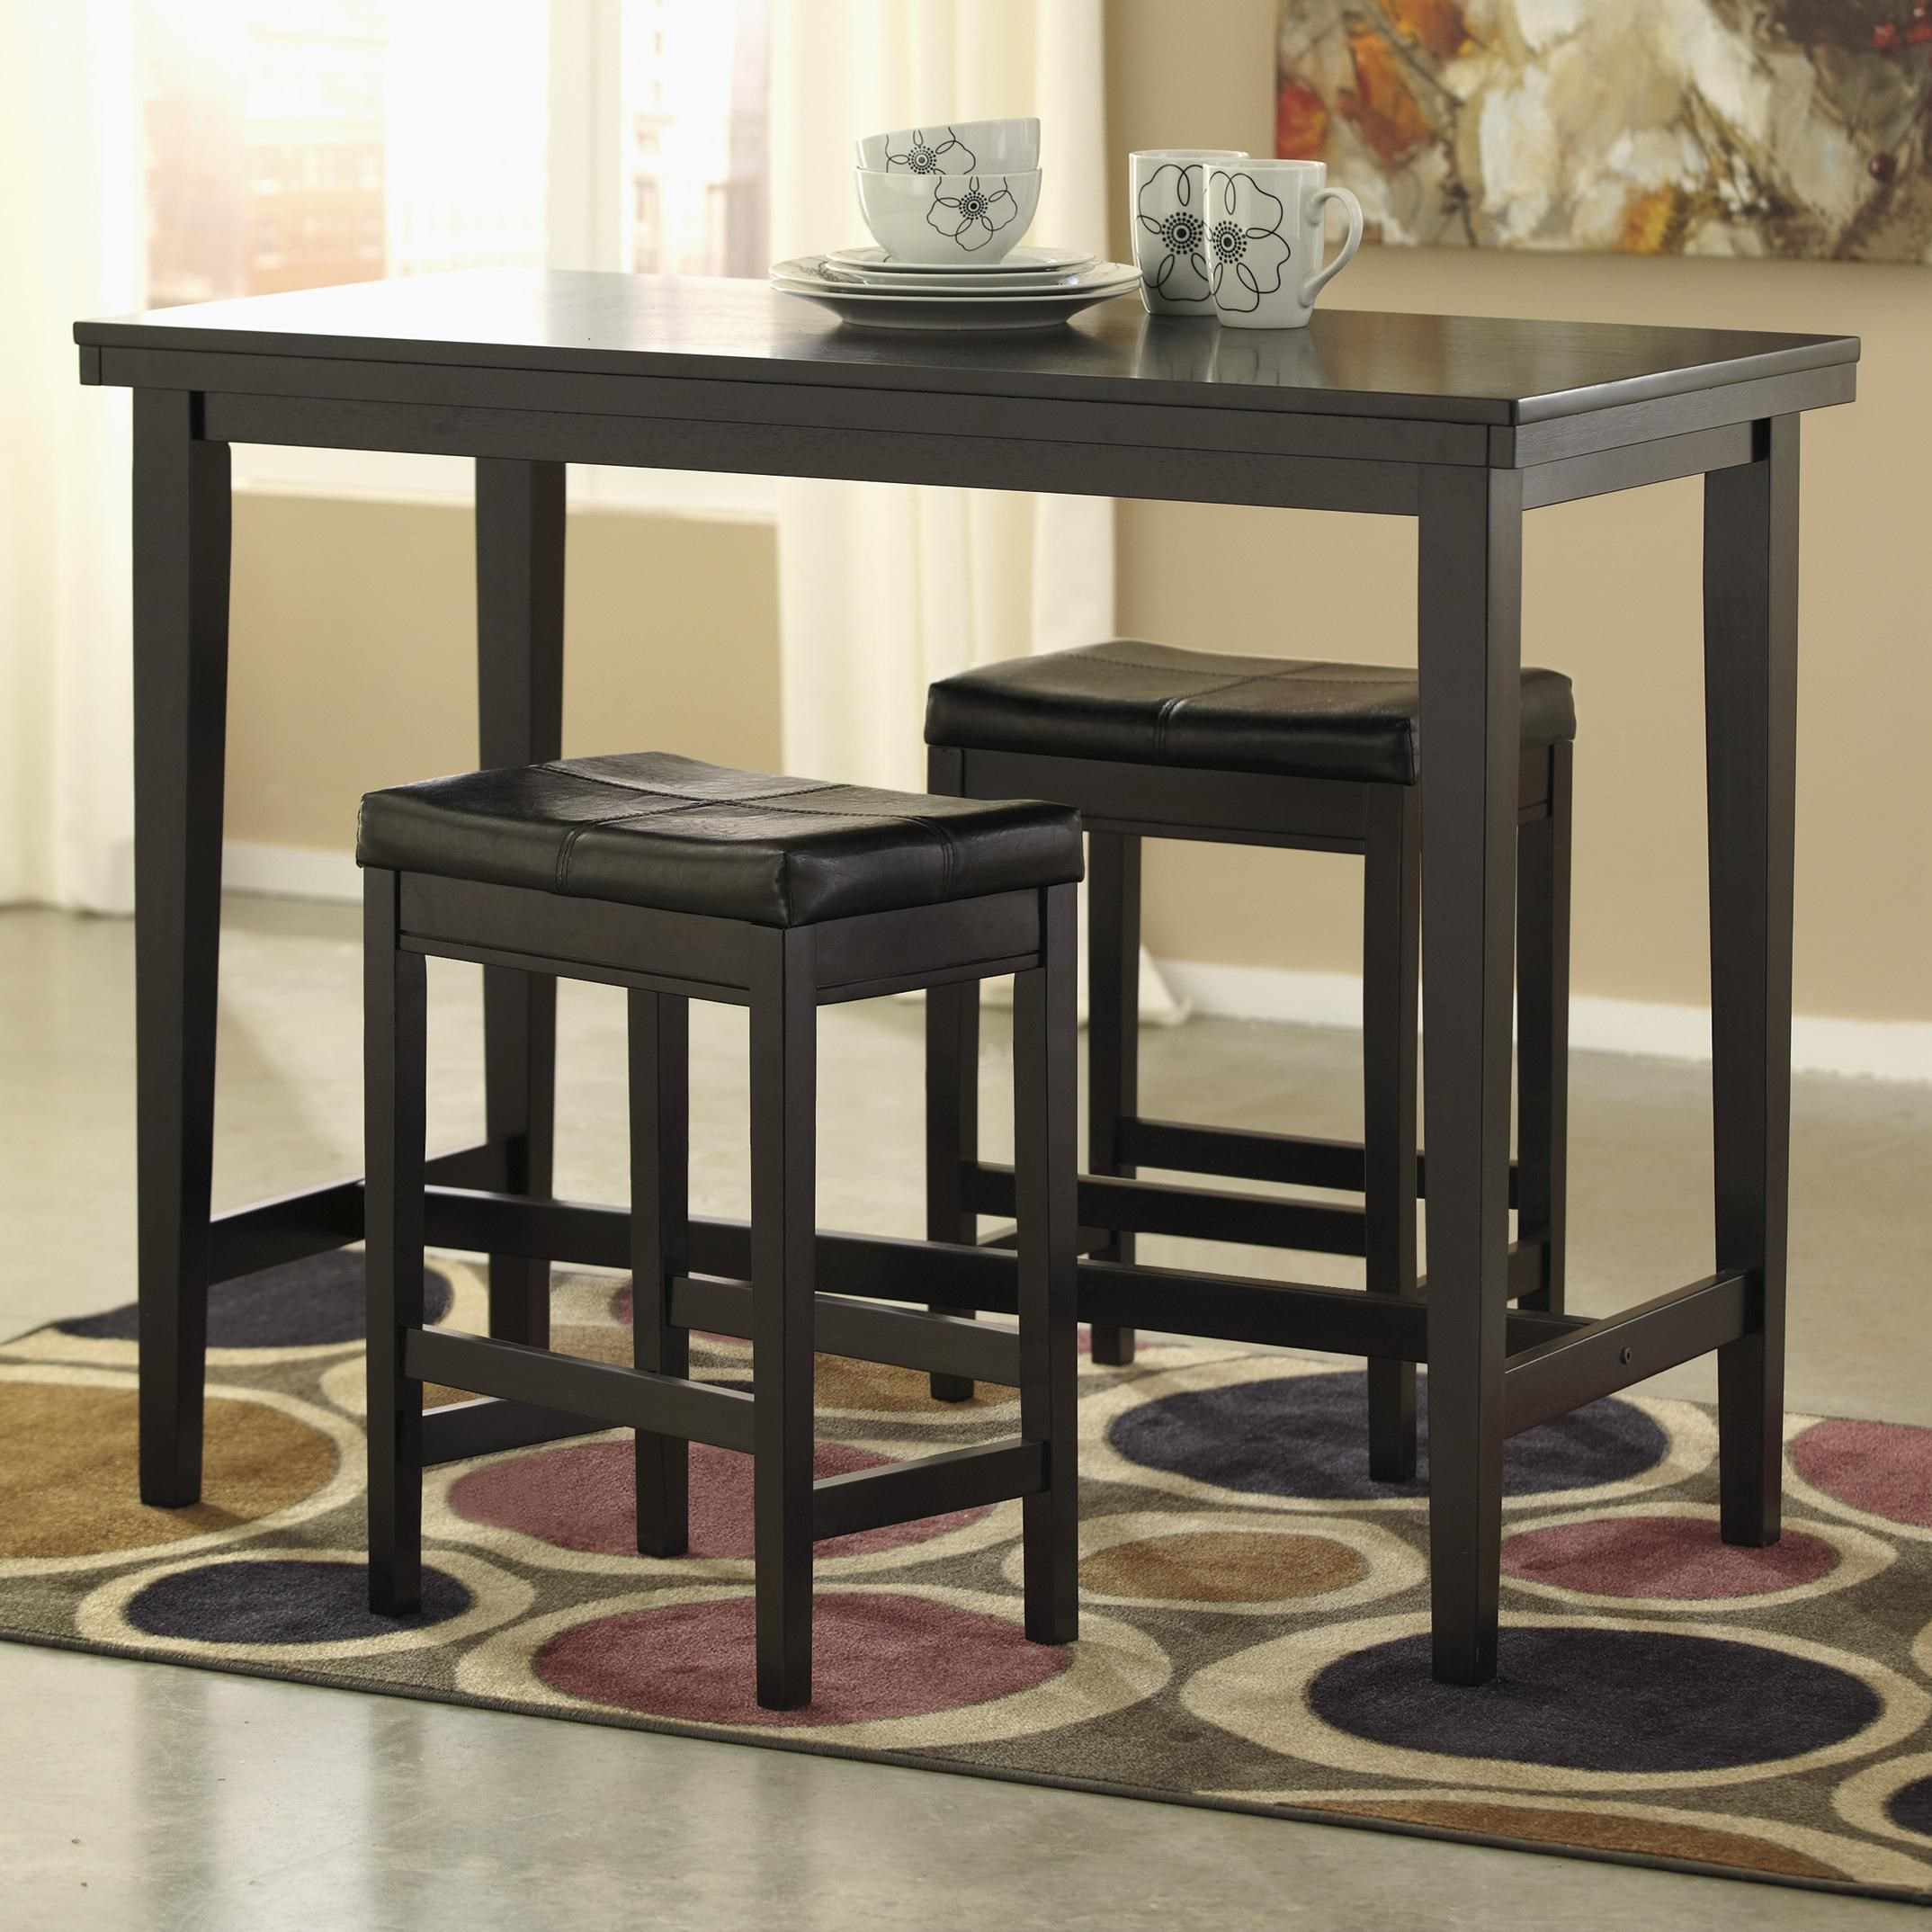 Signature Design By Ashley Kimonte 3 Piece Counter Table Set With Dark  Brown Upholstered Stools   Household Furniture   Pub Table And Stool Sets